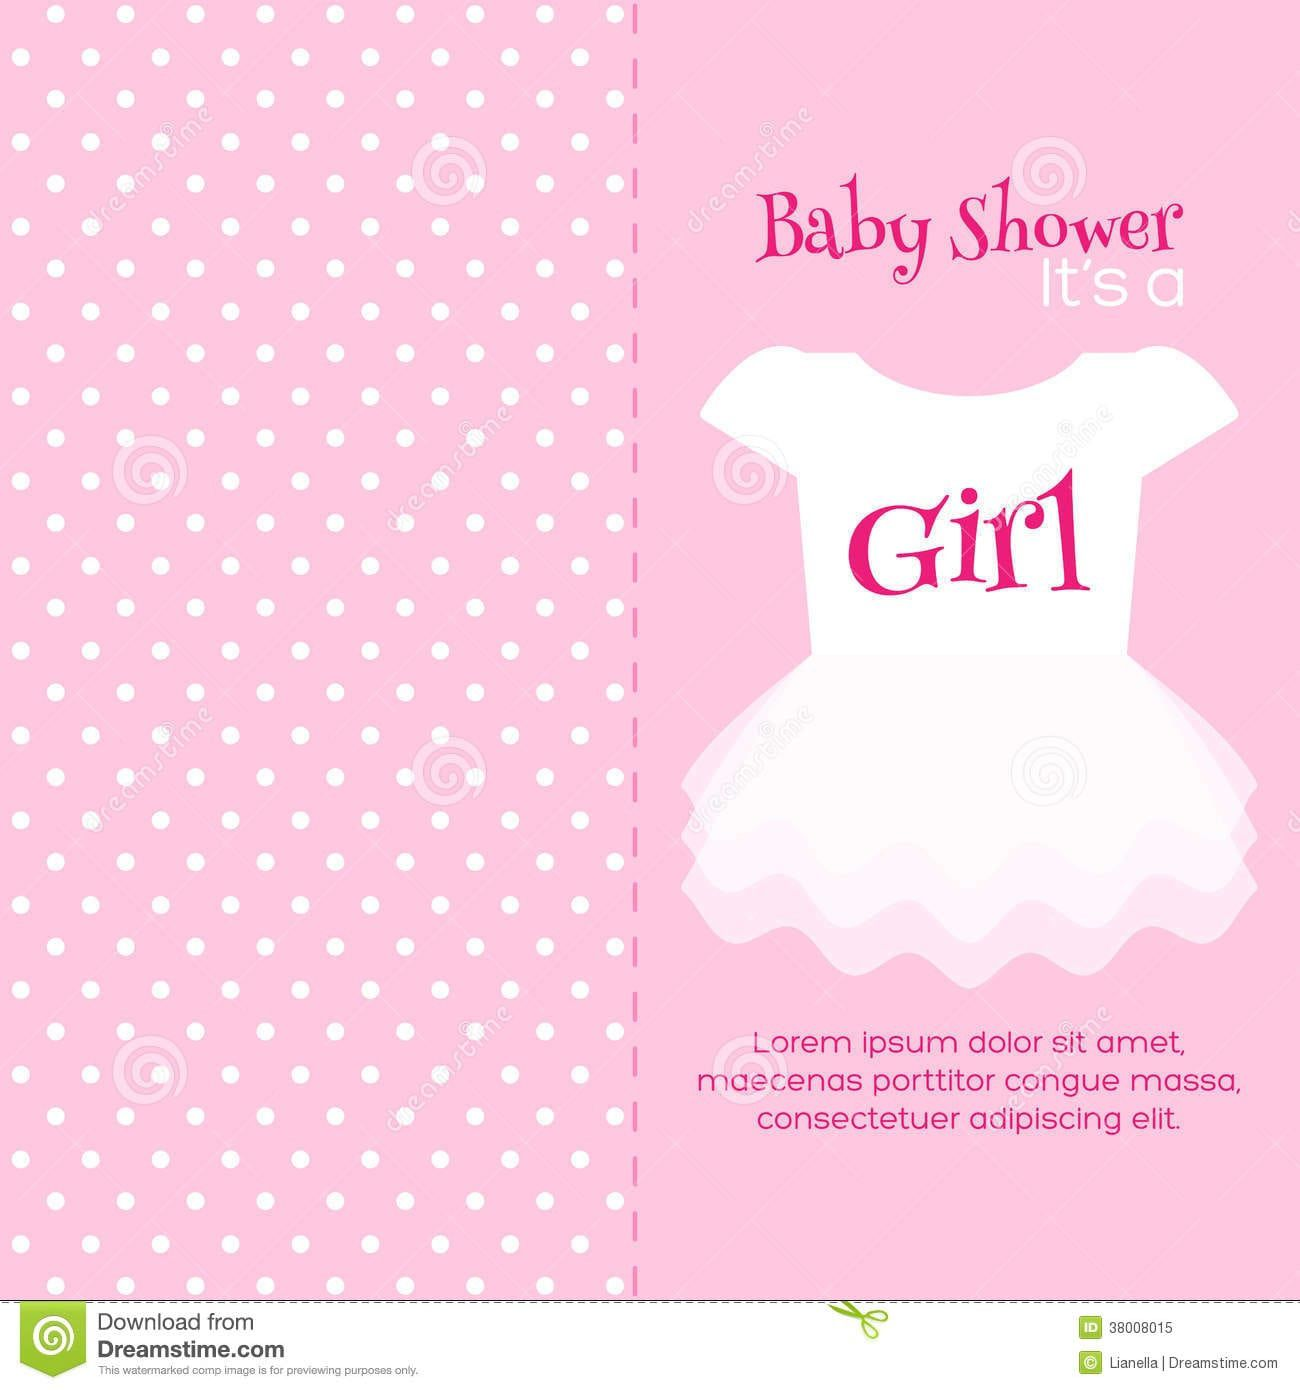 009 Frightening Free Baby Shower Template For Powerpoint Design  BackgroundFull